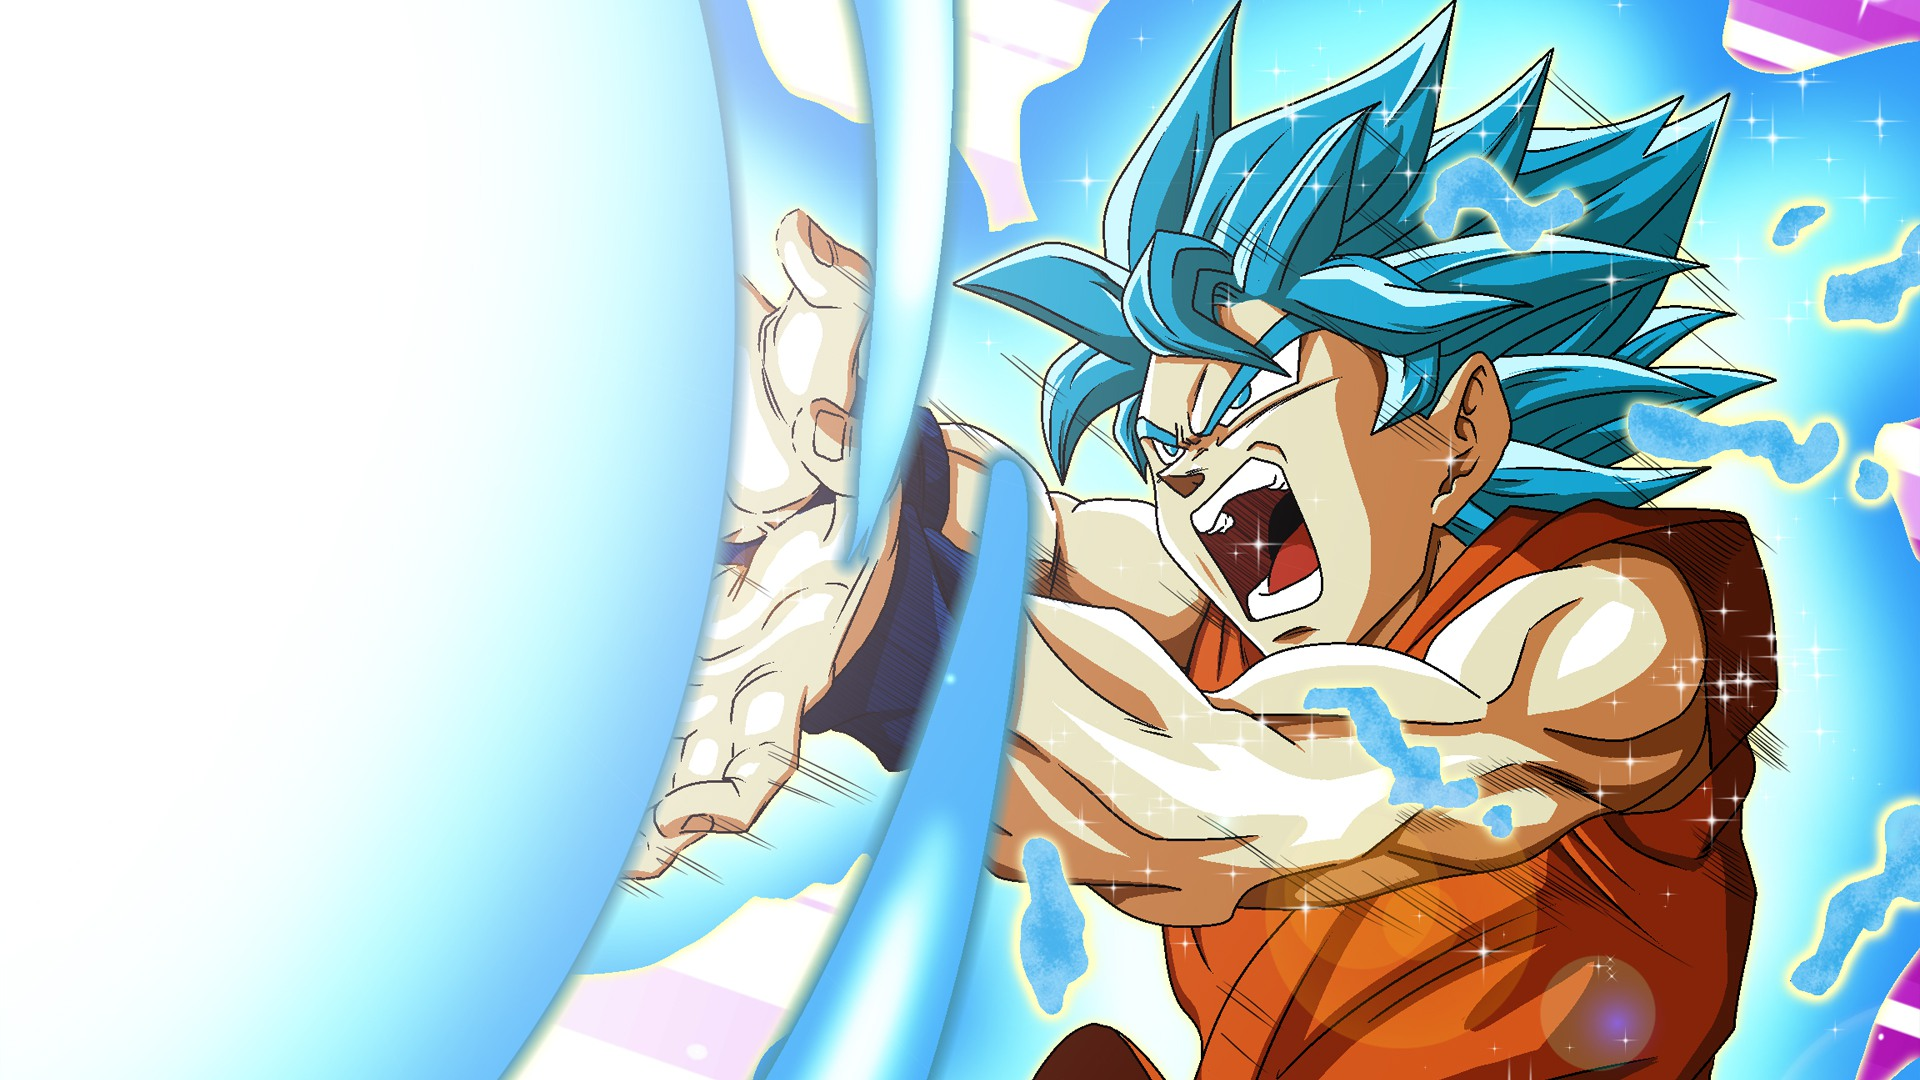 Goku super saiyan blue wallpaper hd - Goku vs vegeta super saiyan 5 ...